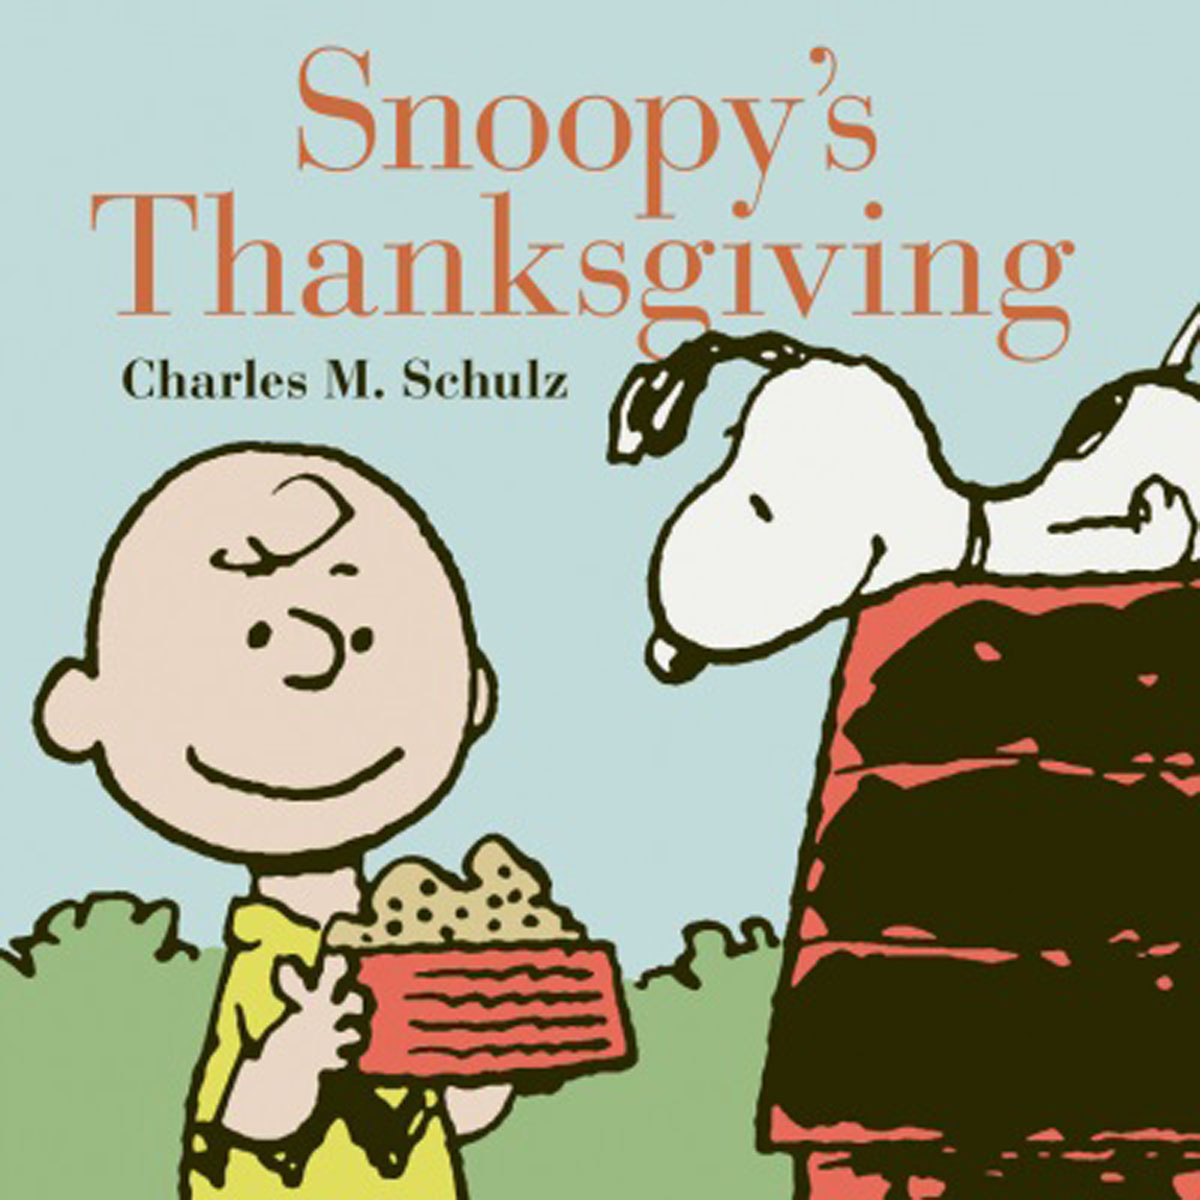 Snoopy's Thanksgiving norman god that limps – science and technology i n the eighties